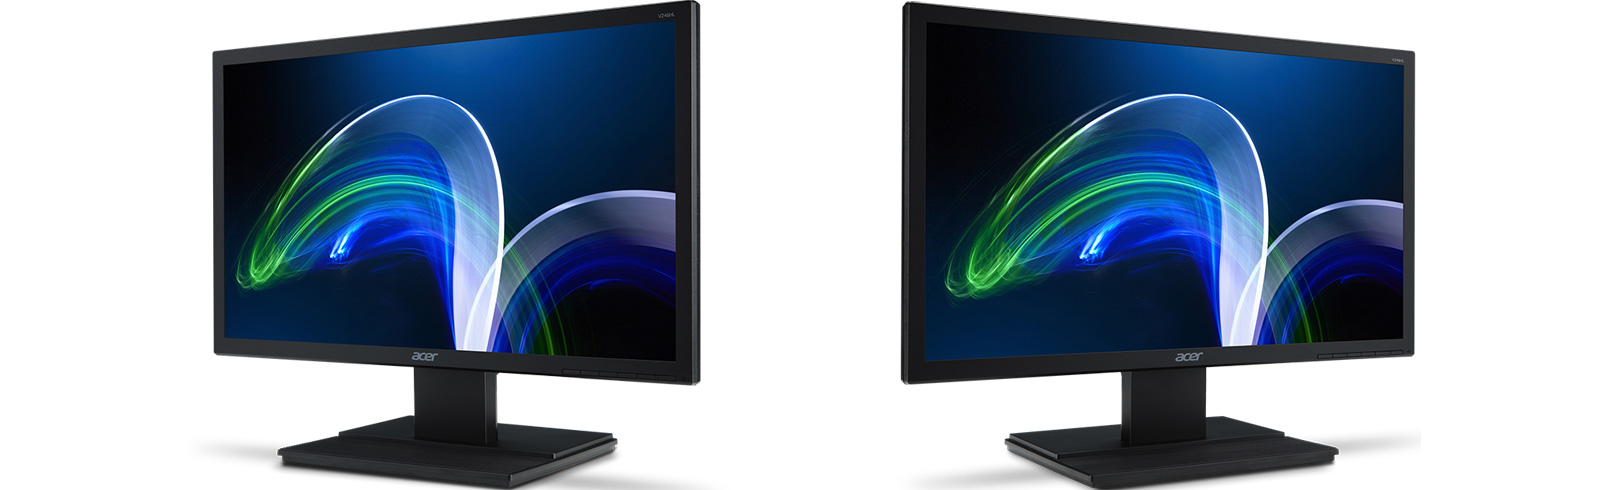 Acer expands its antimicrobial portfolio with the Acer VE246Q monitor